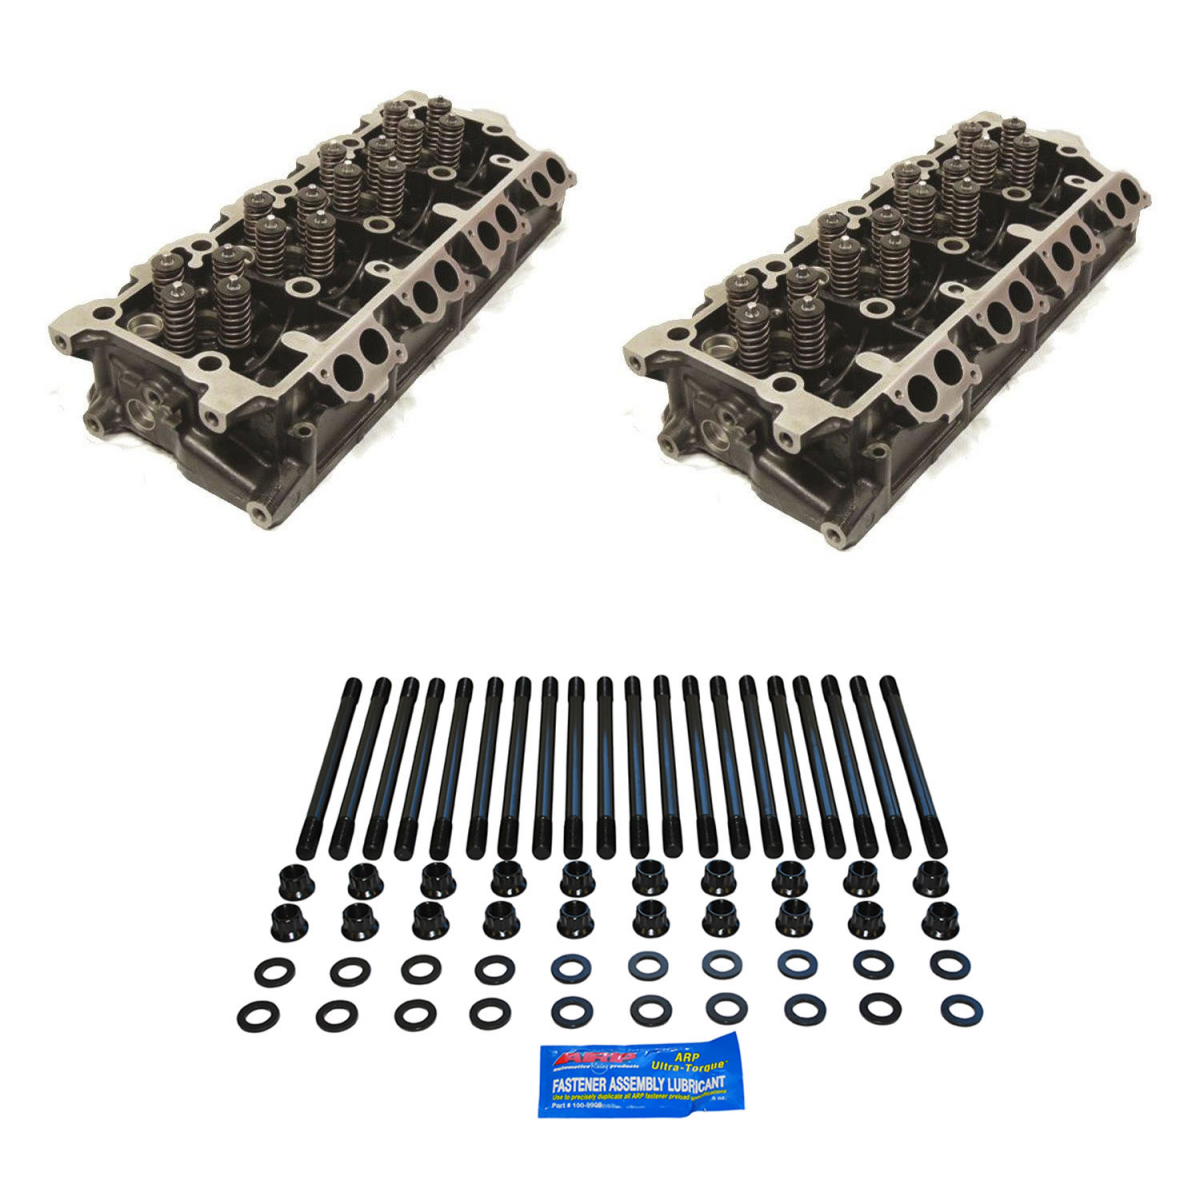 ARP - *NEW* Promaxx 18mm Cylinder Heads & ARP Studs For 03-06 Ford 6.0L Powerstroke